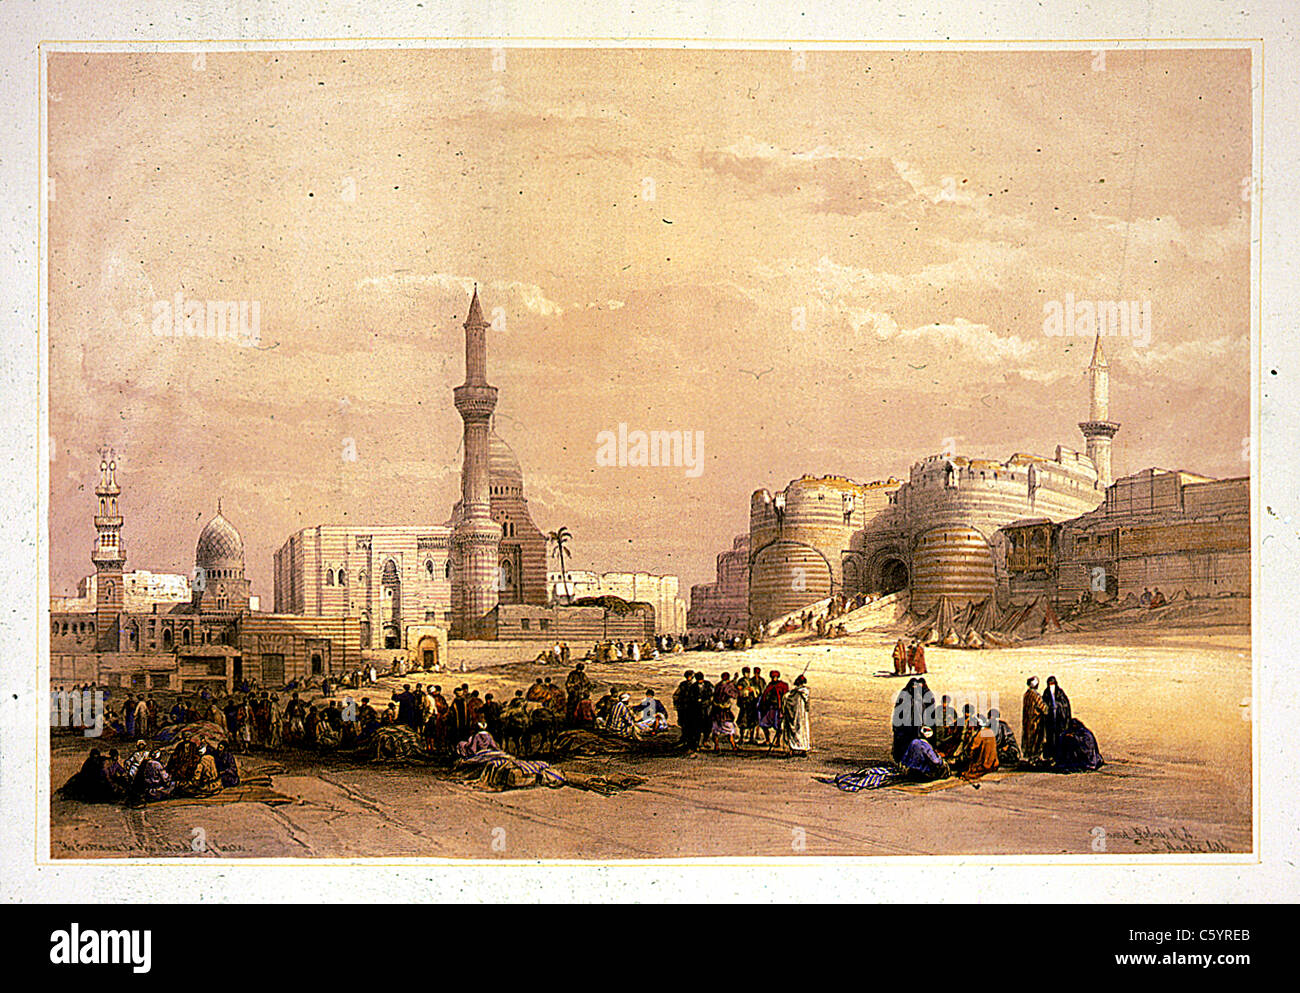 The entrance to the citadel of Cairo - David Roberts and Louis Haghe Lithograph - Stock Image